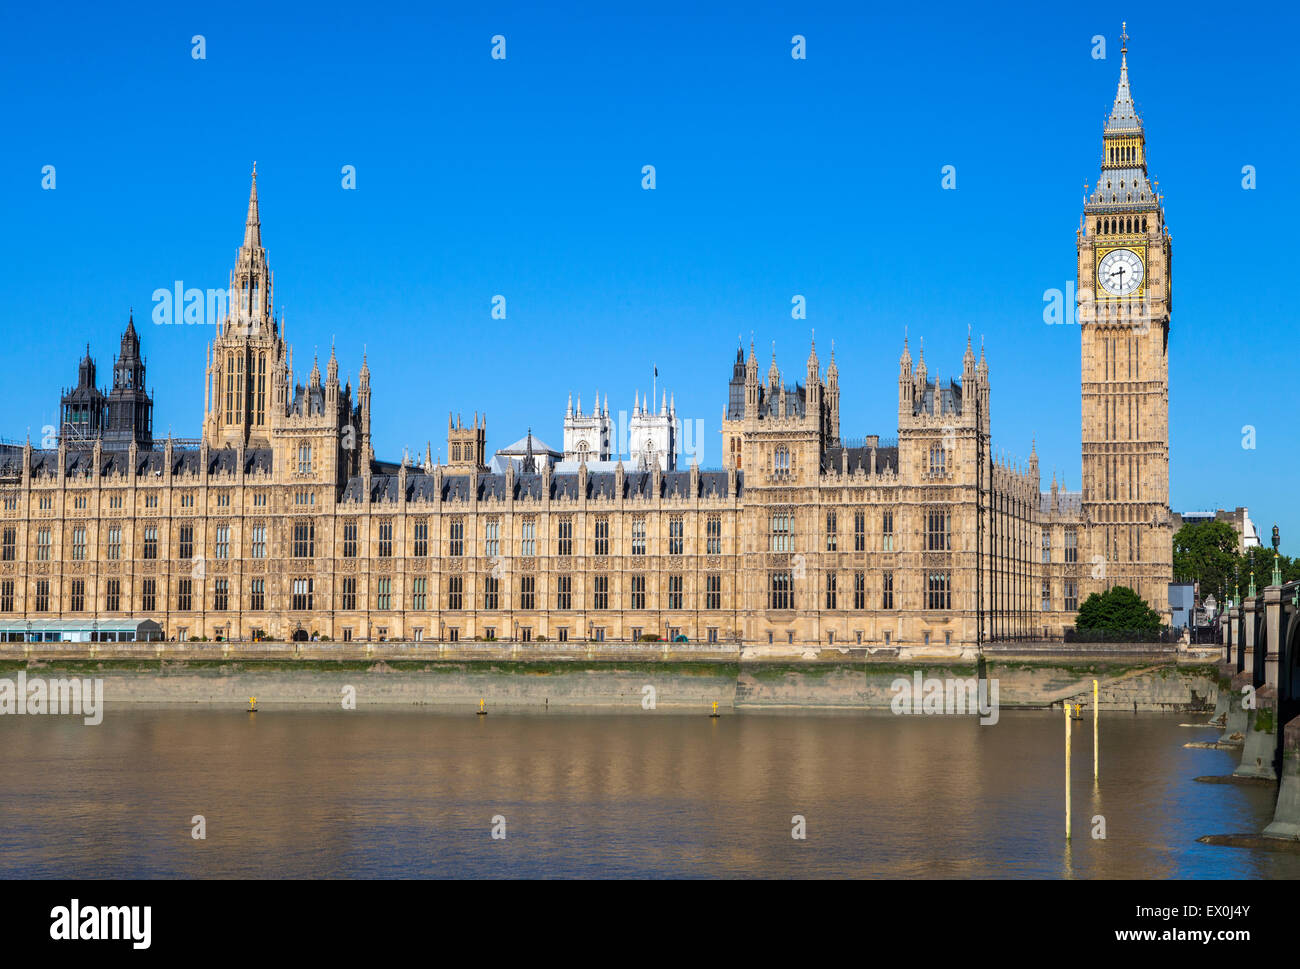 A view of the magnificent Palace of Westminster over the River Thames in London.  The towers of Westminster Abbey - Stock Image